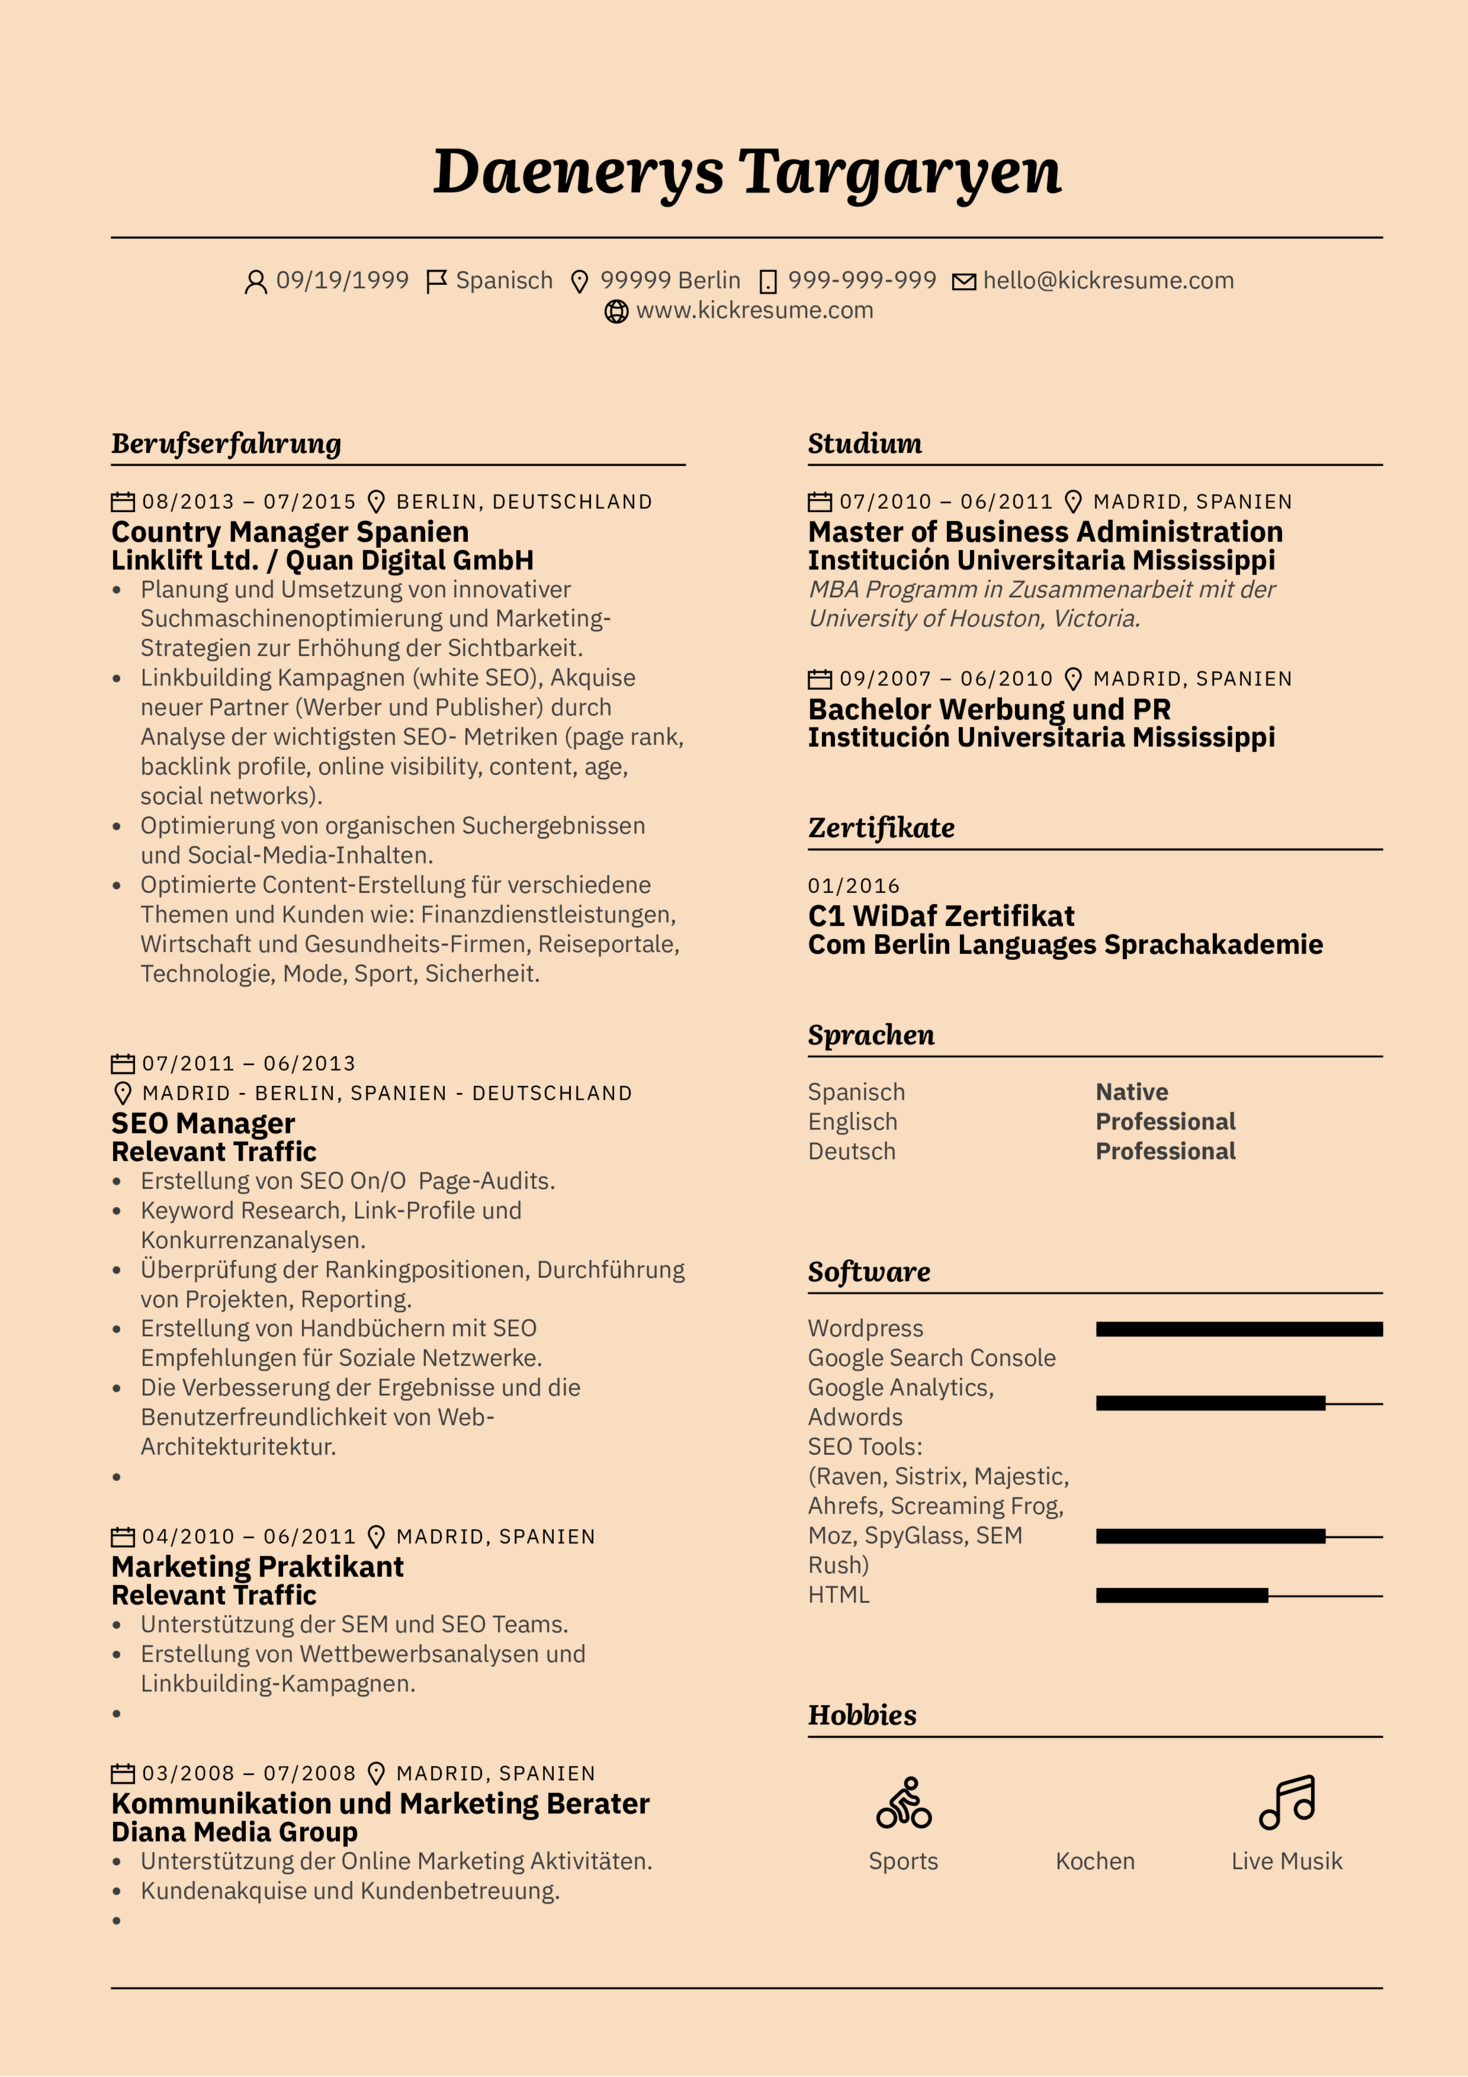 Customers Support Assistant Resume Sample (german)